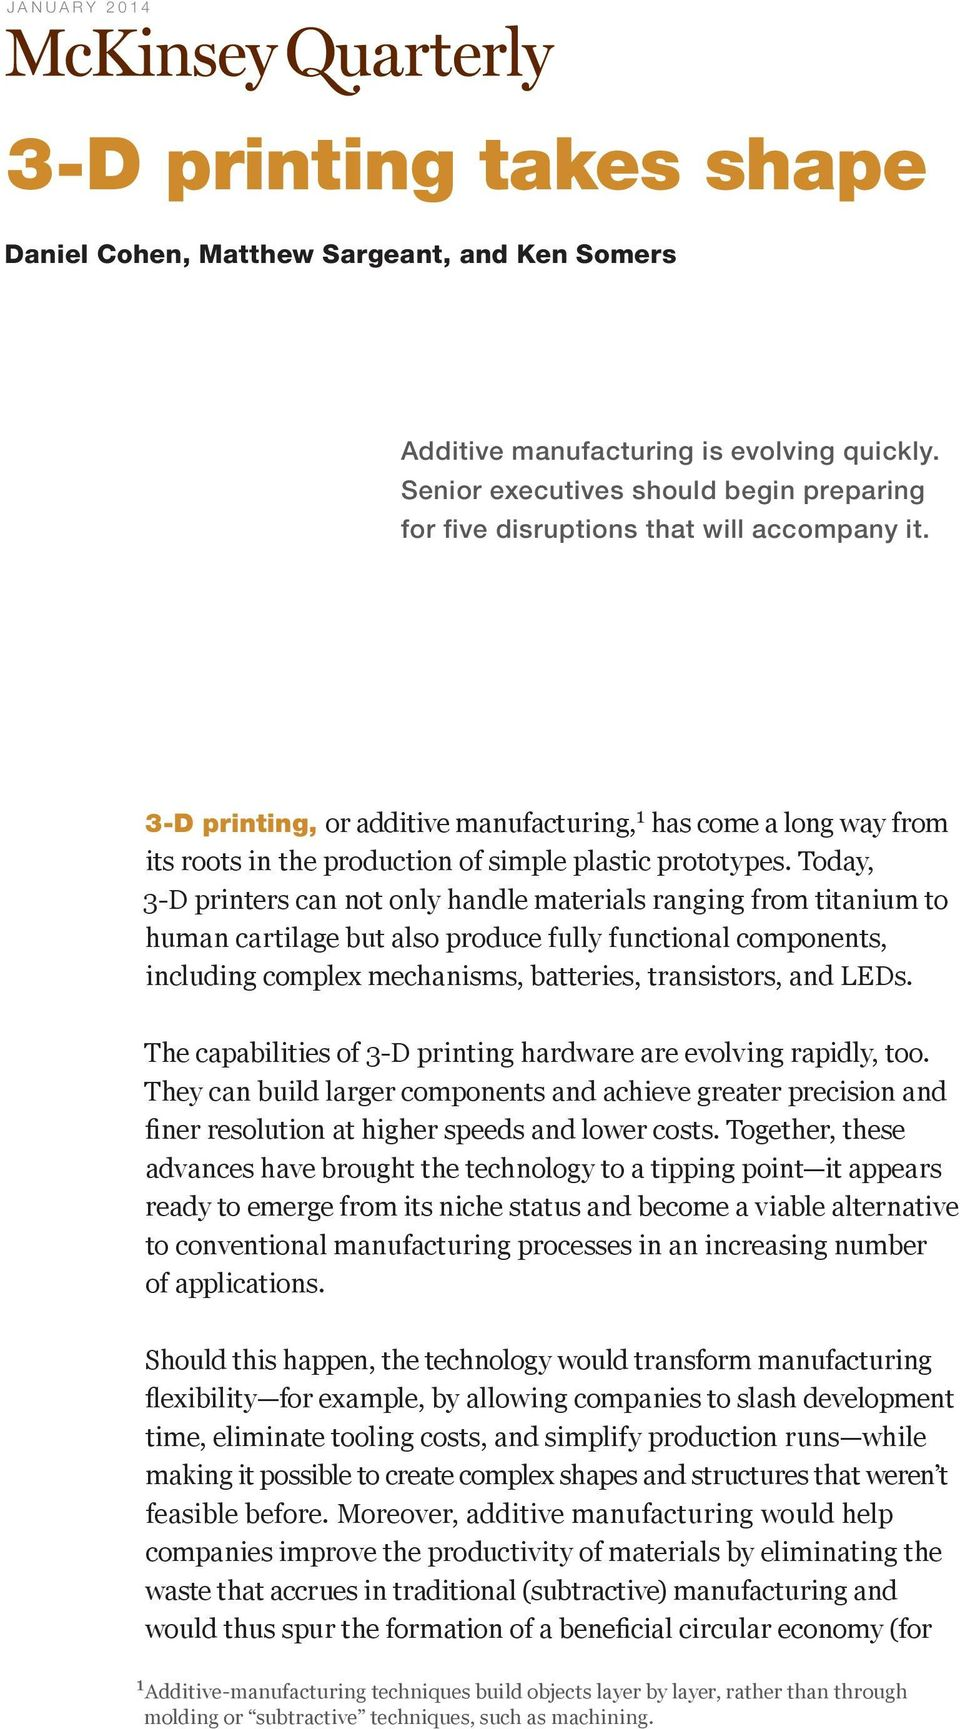 3-D printing, or additive manufacturing, 1 has come a long way from its roots in the production of simple plastic prototypes.